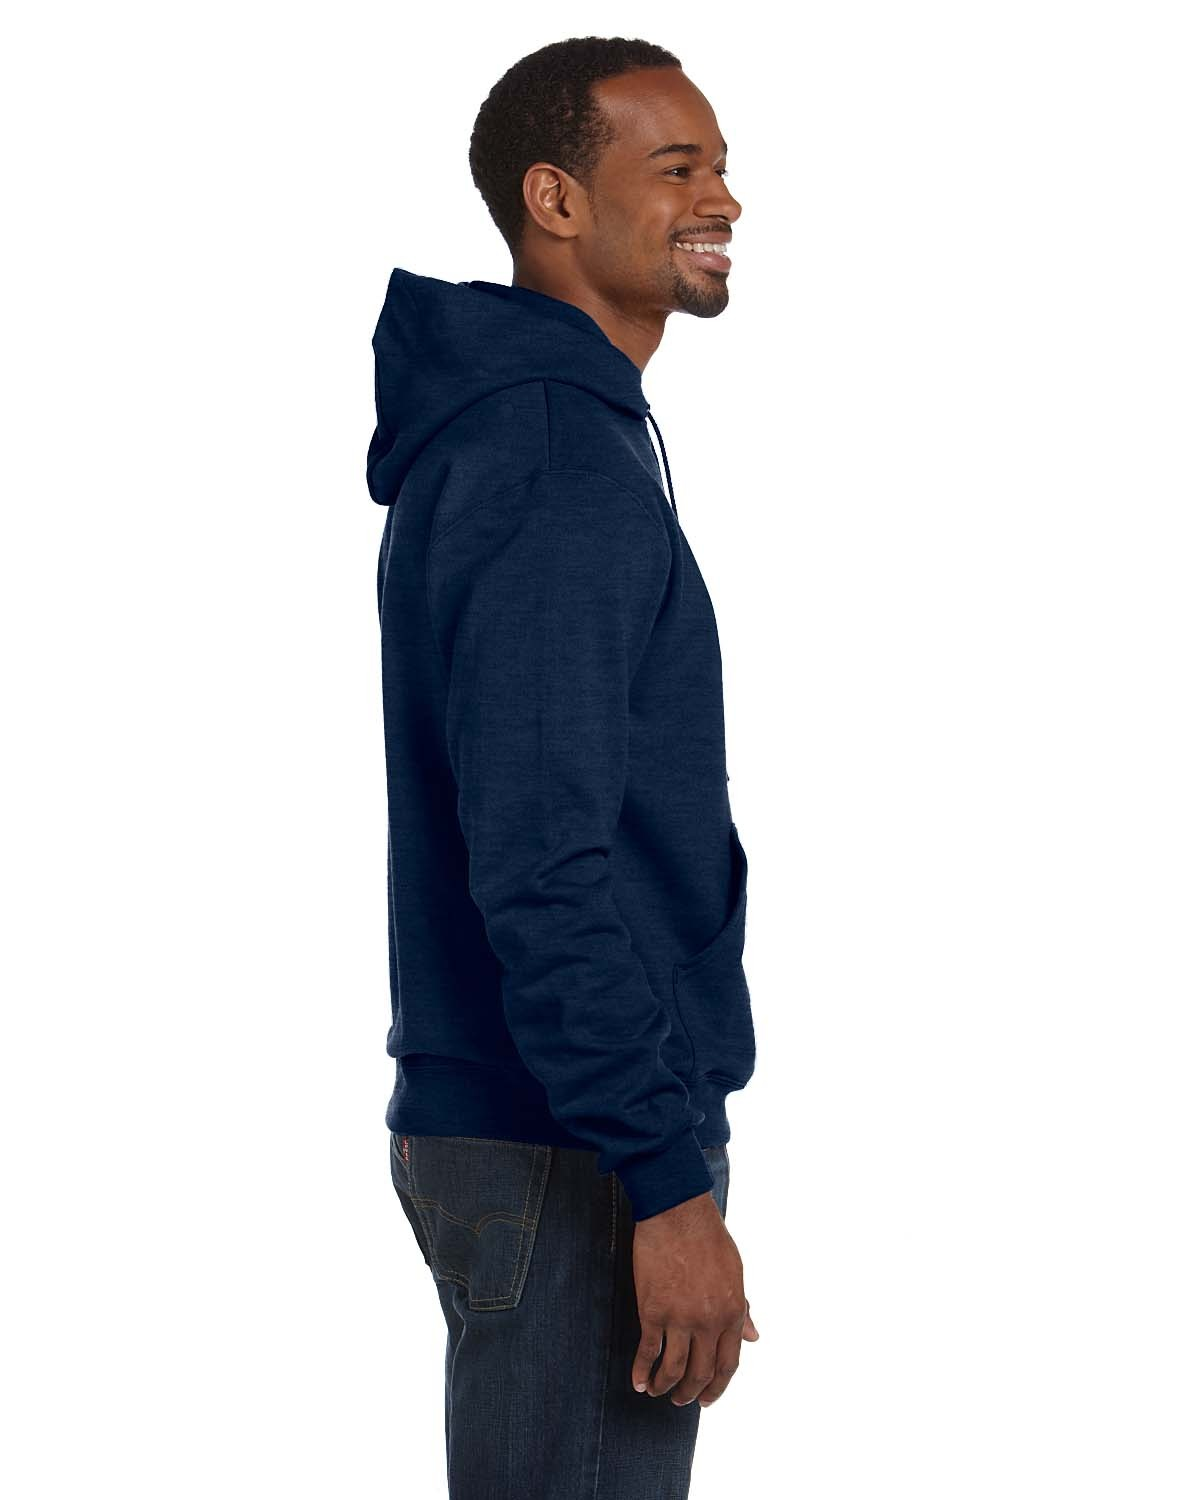 S700 Champion NAVY HEATHER